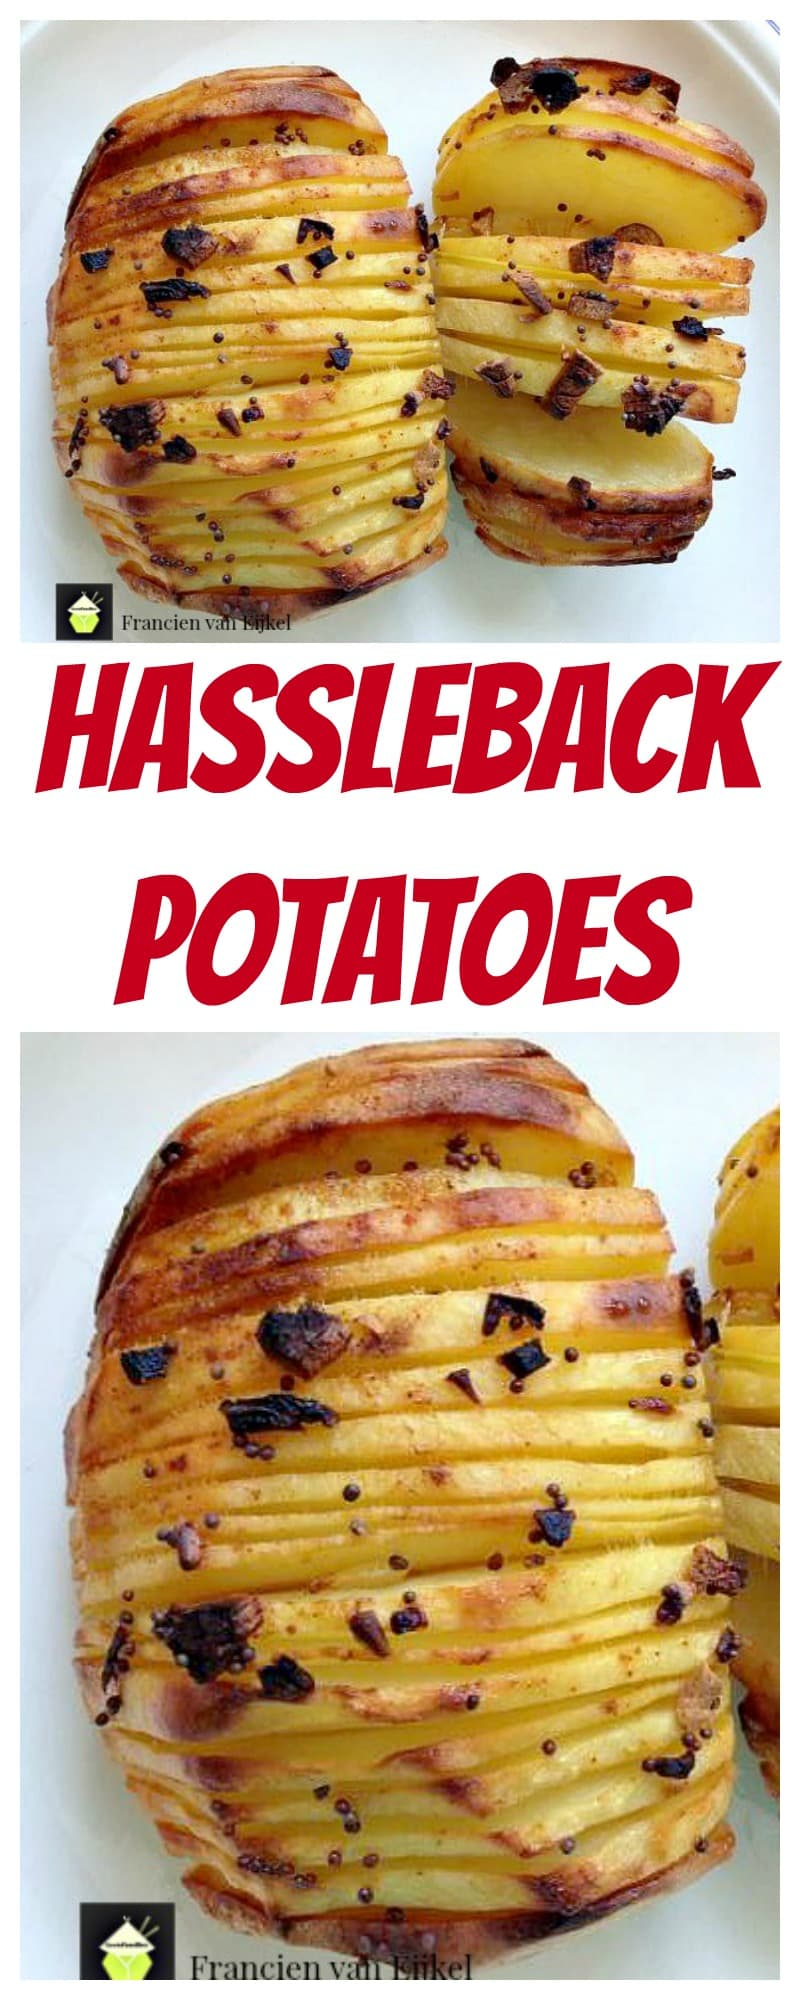 Hassleback Potatoes - Simple recipe, In the oven or on the grill (in foil) and add whatever flavours you like too! even a blob of sour cream or mayo on the top when they're done.